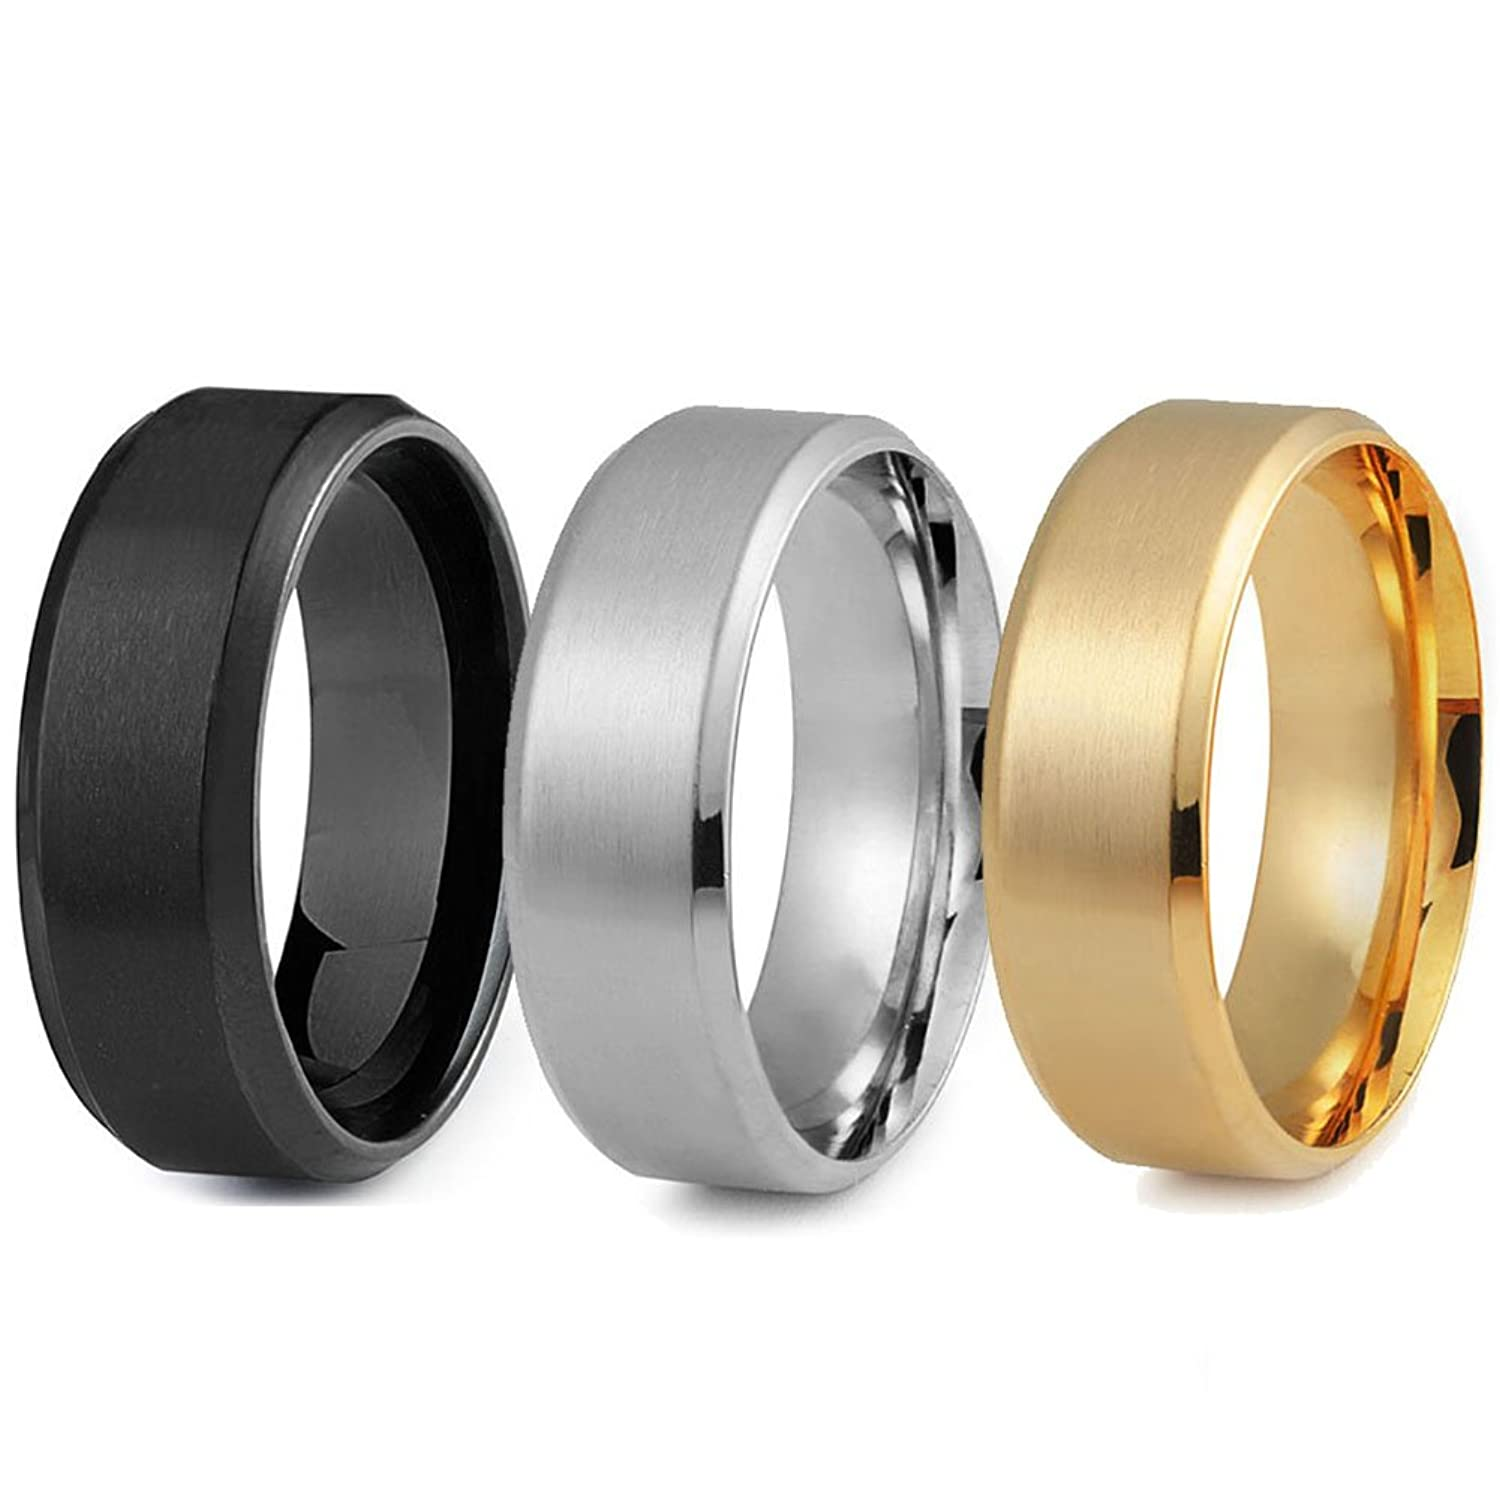 steel most mens of tattoos guy size photo full wedding rings ideas collection ring cool jstyle design simple popular ideasool men bands stainless for band cooldding sets male